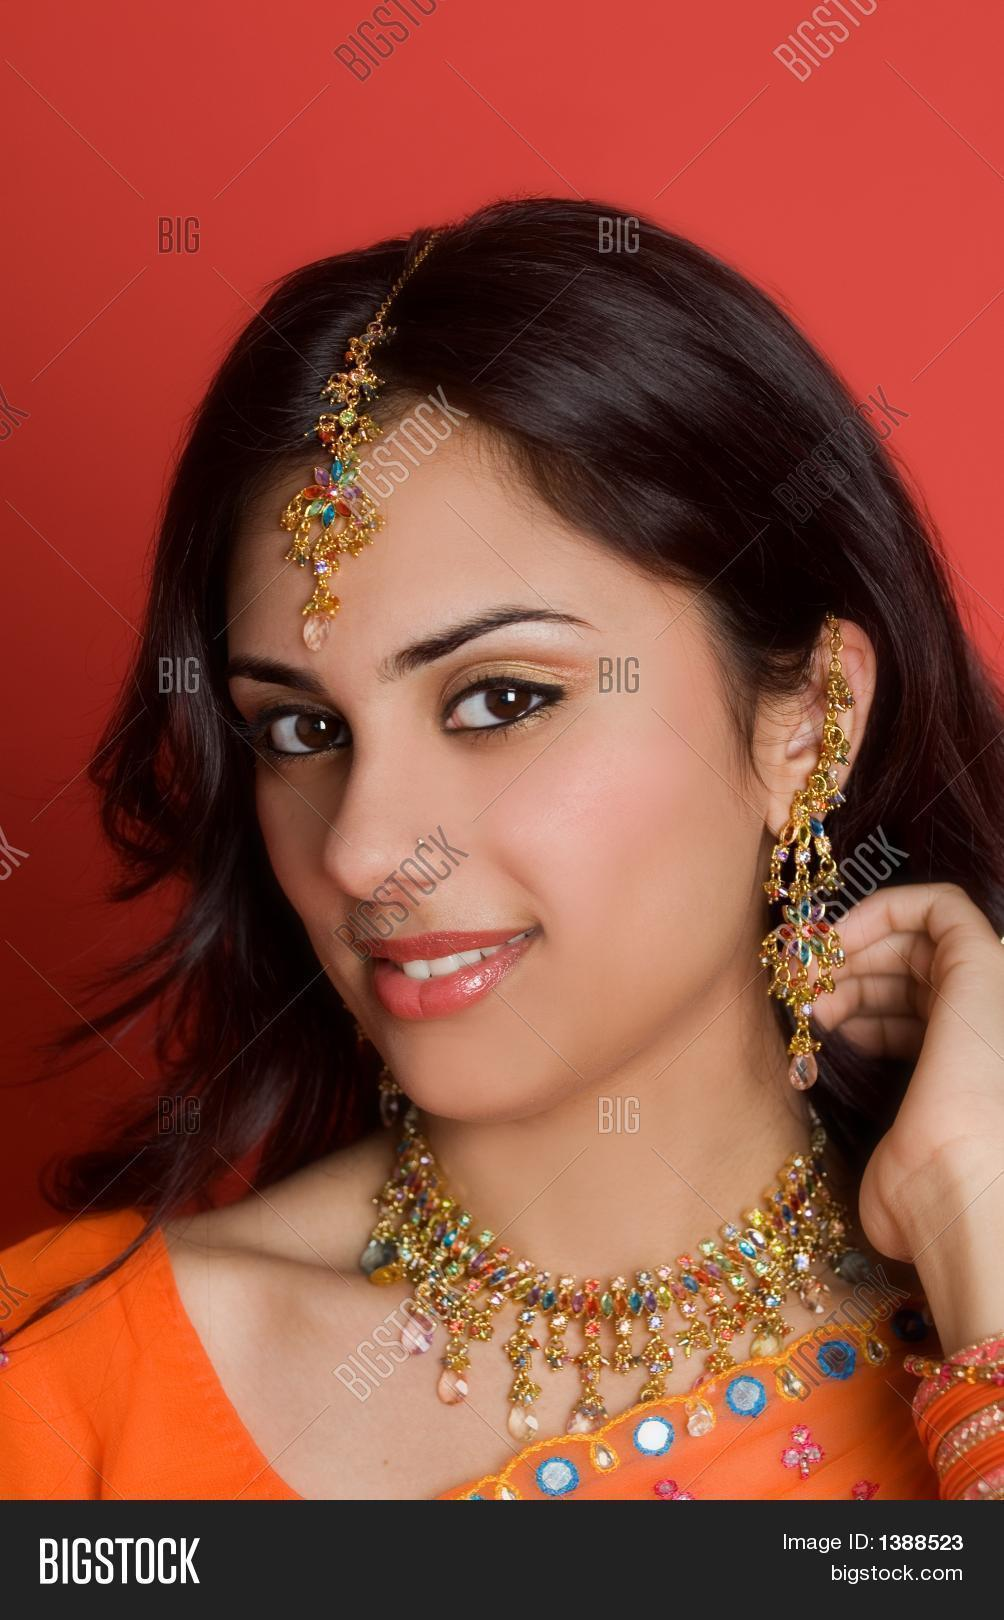 hindu single women in garrattsville Indian dating usa - welcome to the simple online dating site, here you can chat, date, or just flirt with men or women sign up for free and send messages to single women or man.